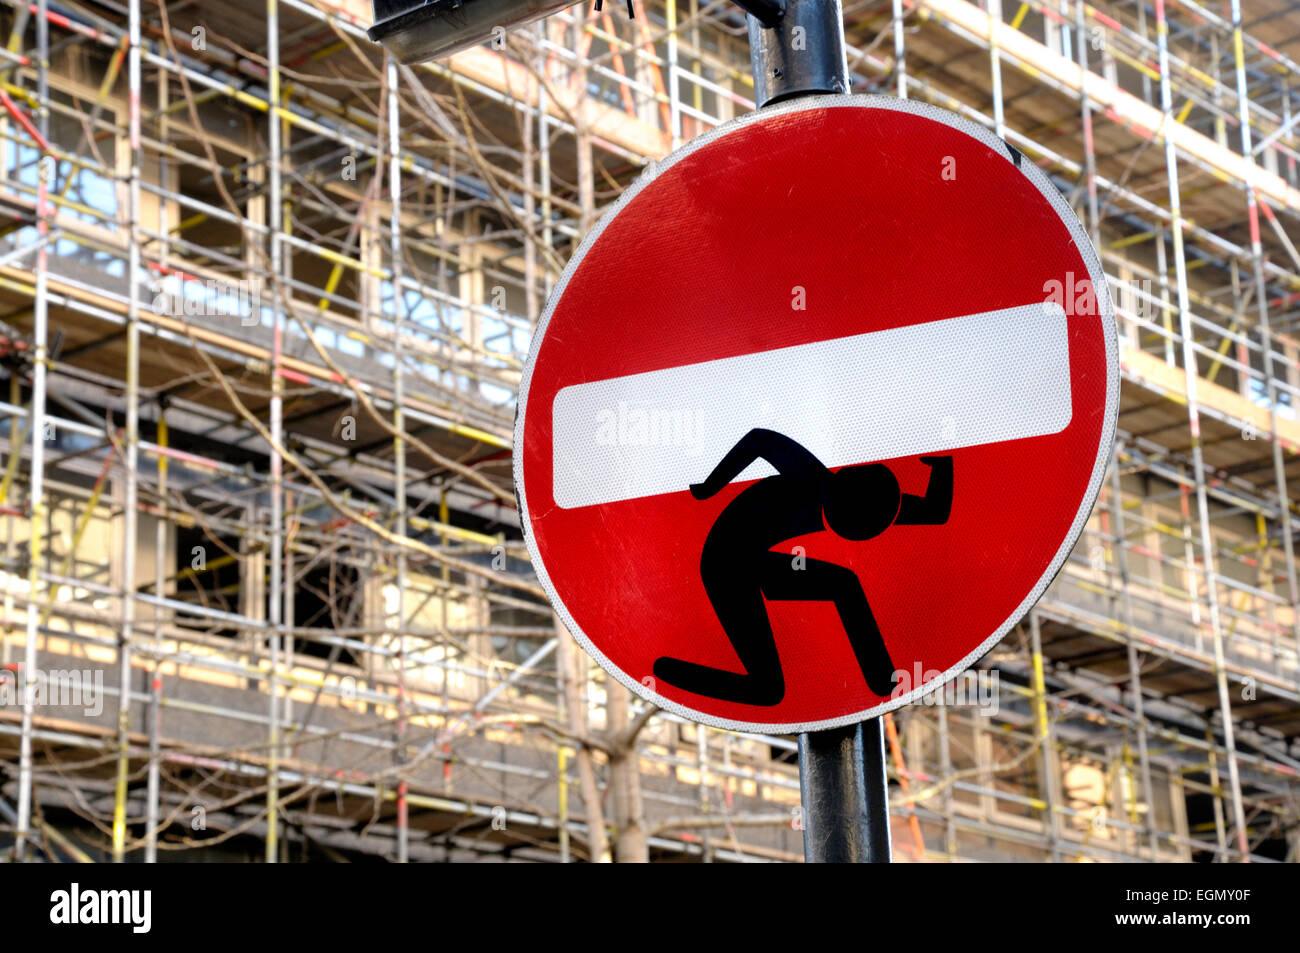 London, England, UK. Street sign in Drury Lane 'added to', probably by Clet Abraham (Feb 2015) - Stock Image